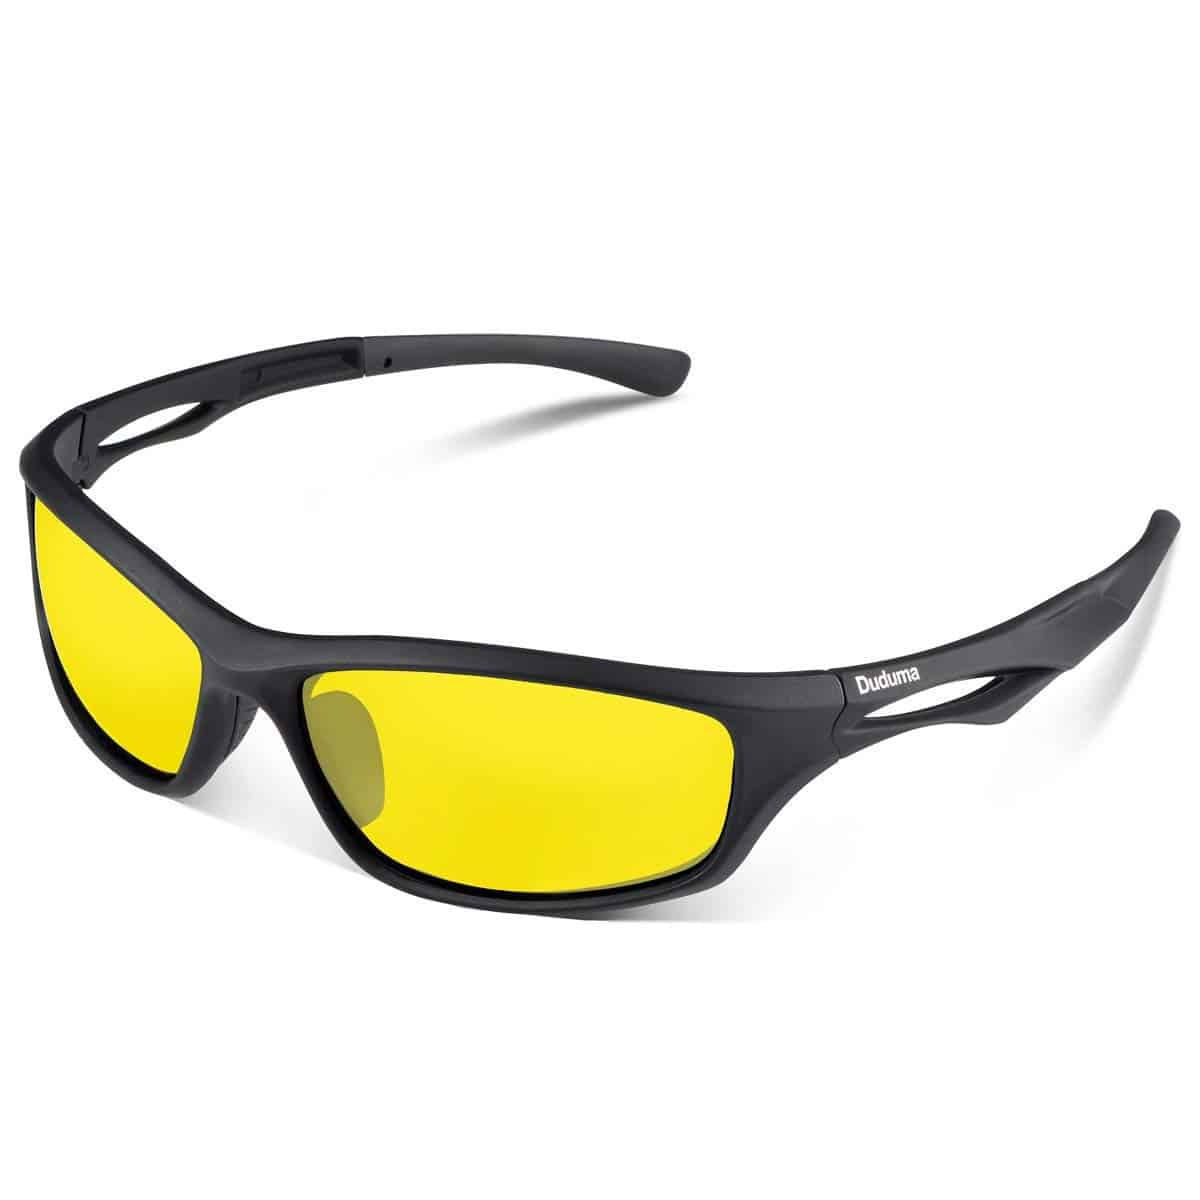 9785613e55a Top 10 Best Cycling Glasses in 2019 - TopTenTheBest